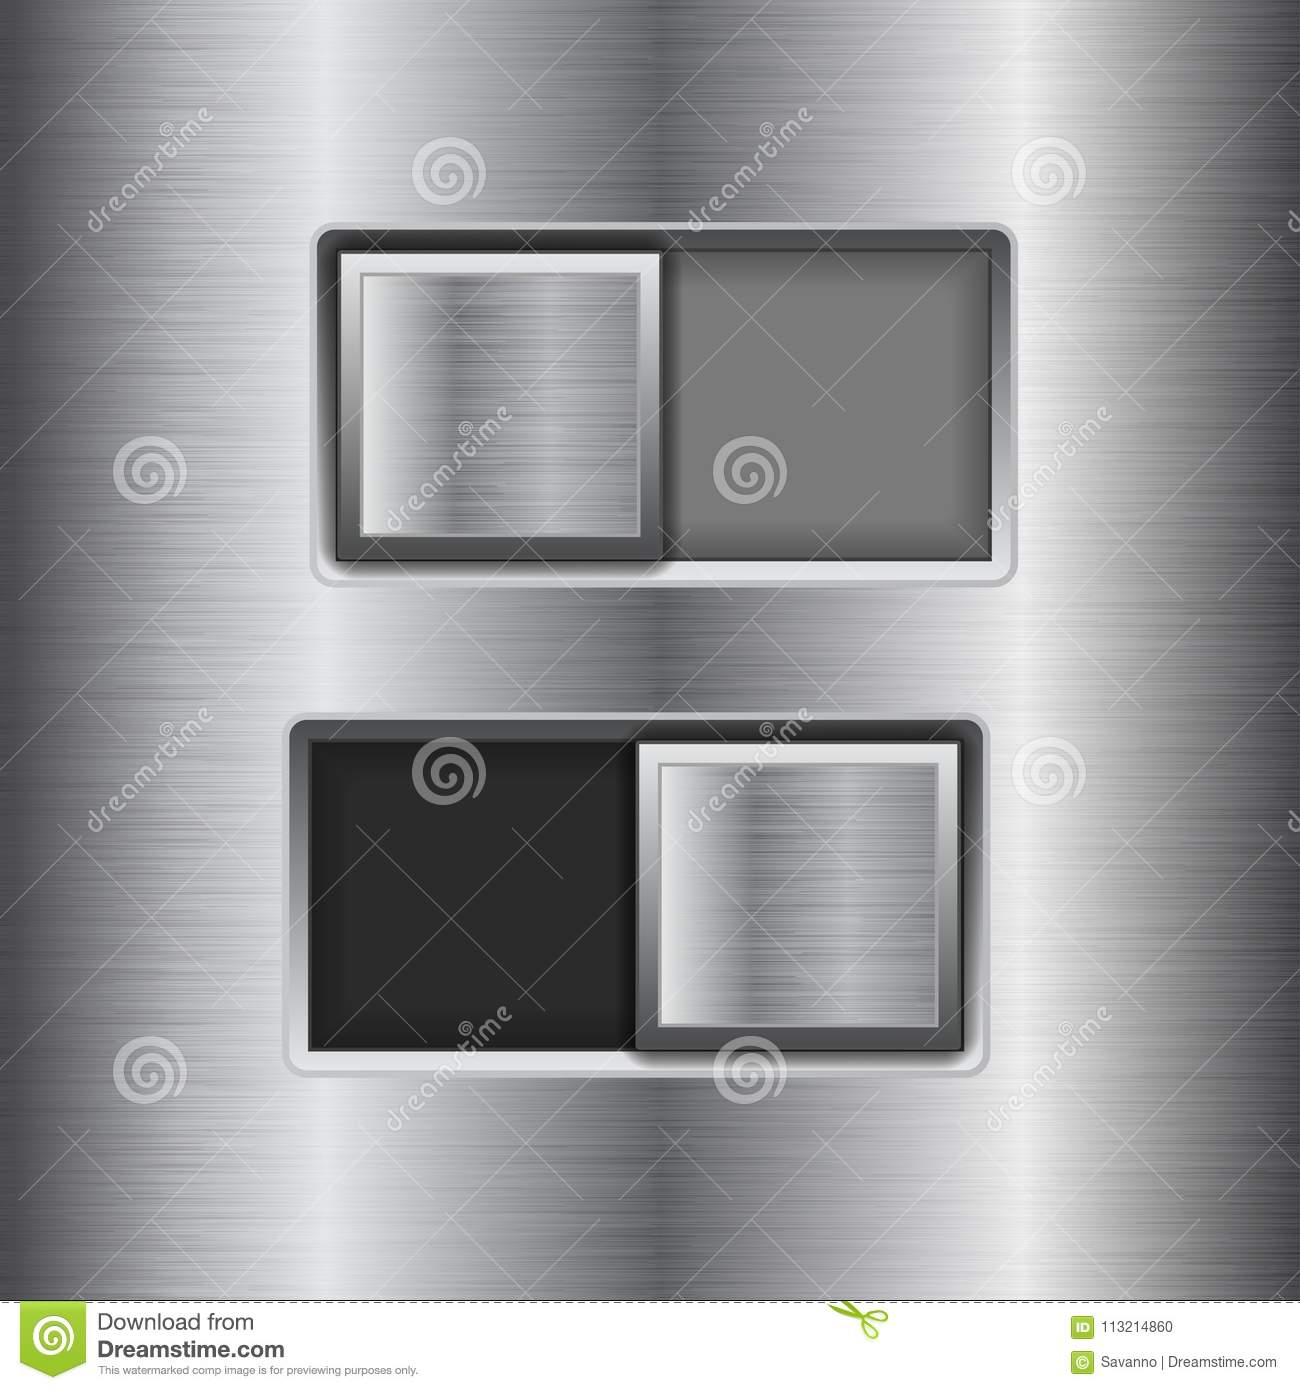 On and Off square slider buttons. Metal switch interface buttons on stainless steel background